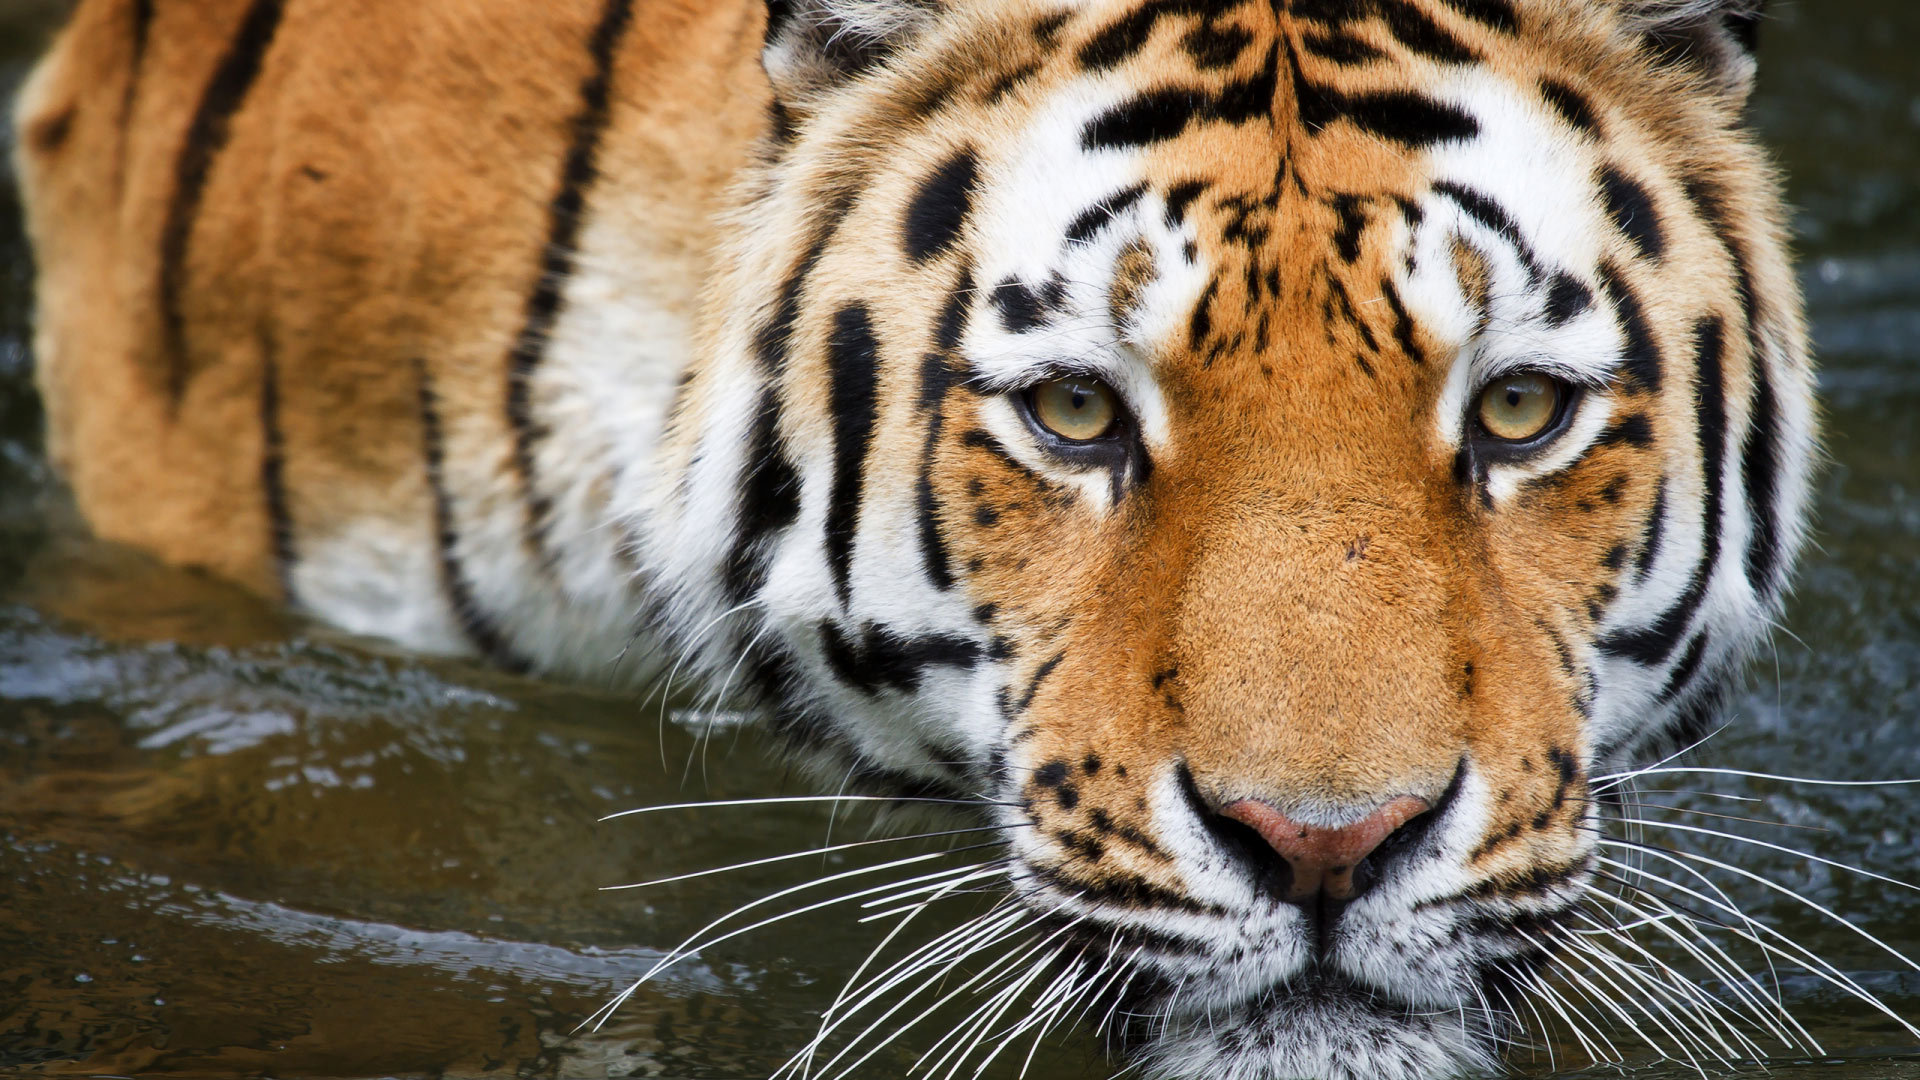 tiger wallpapers images photos pictures backgrounds